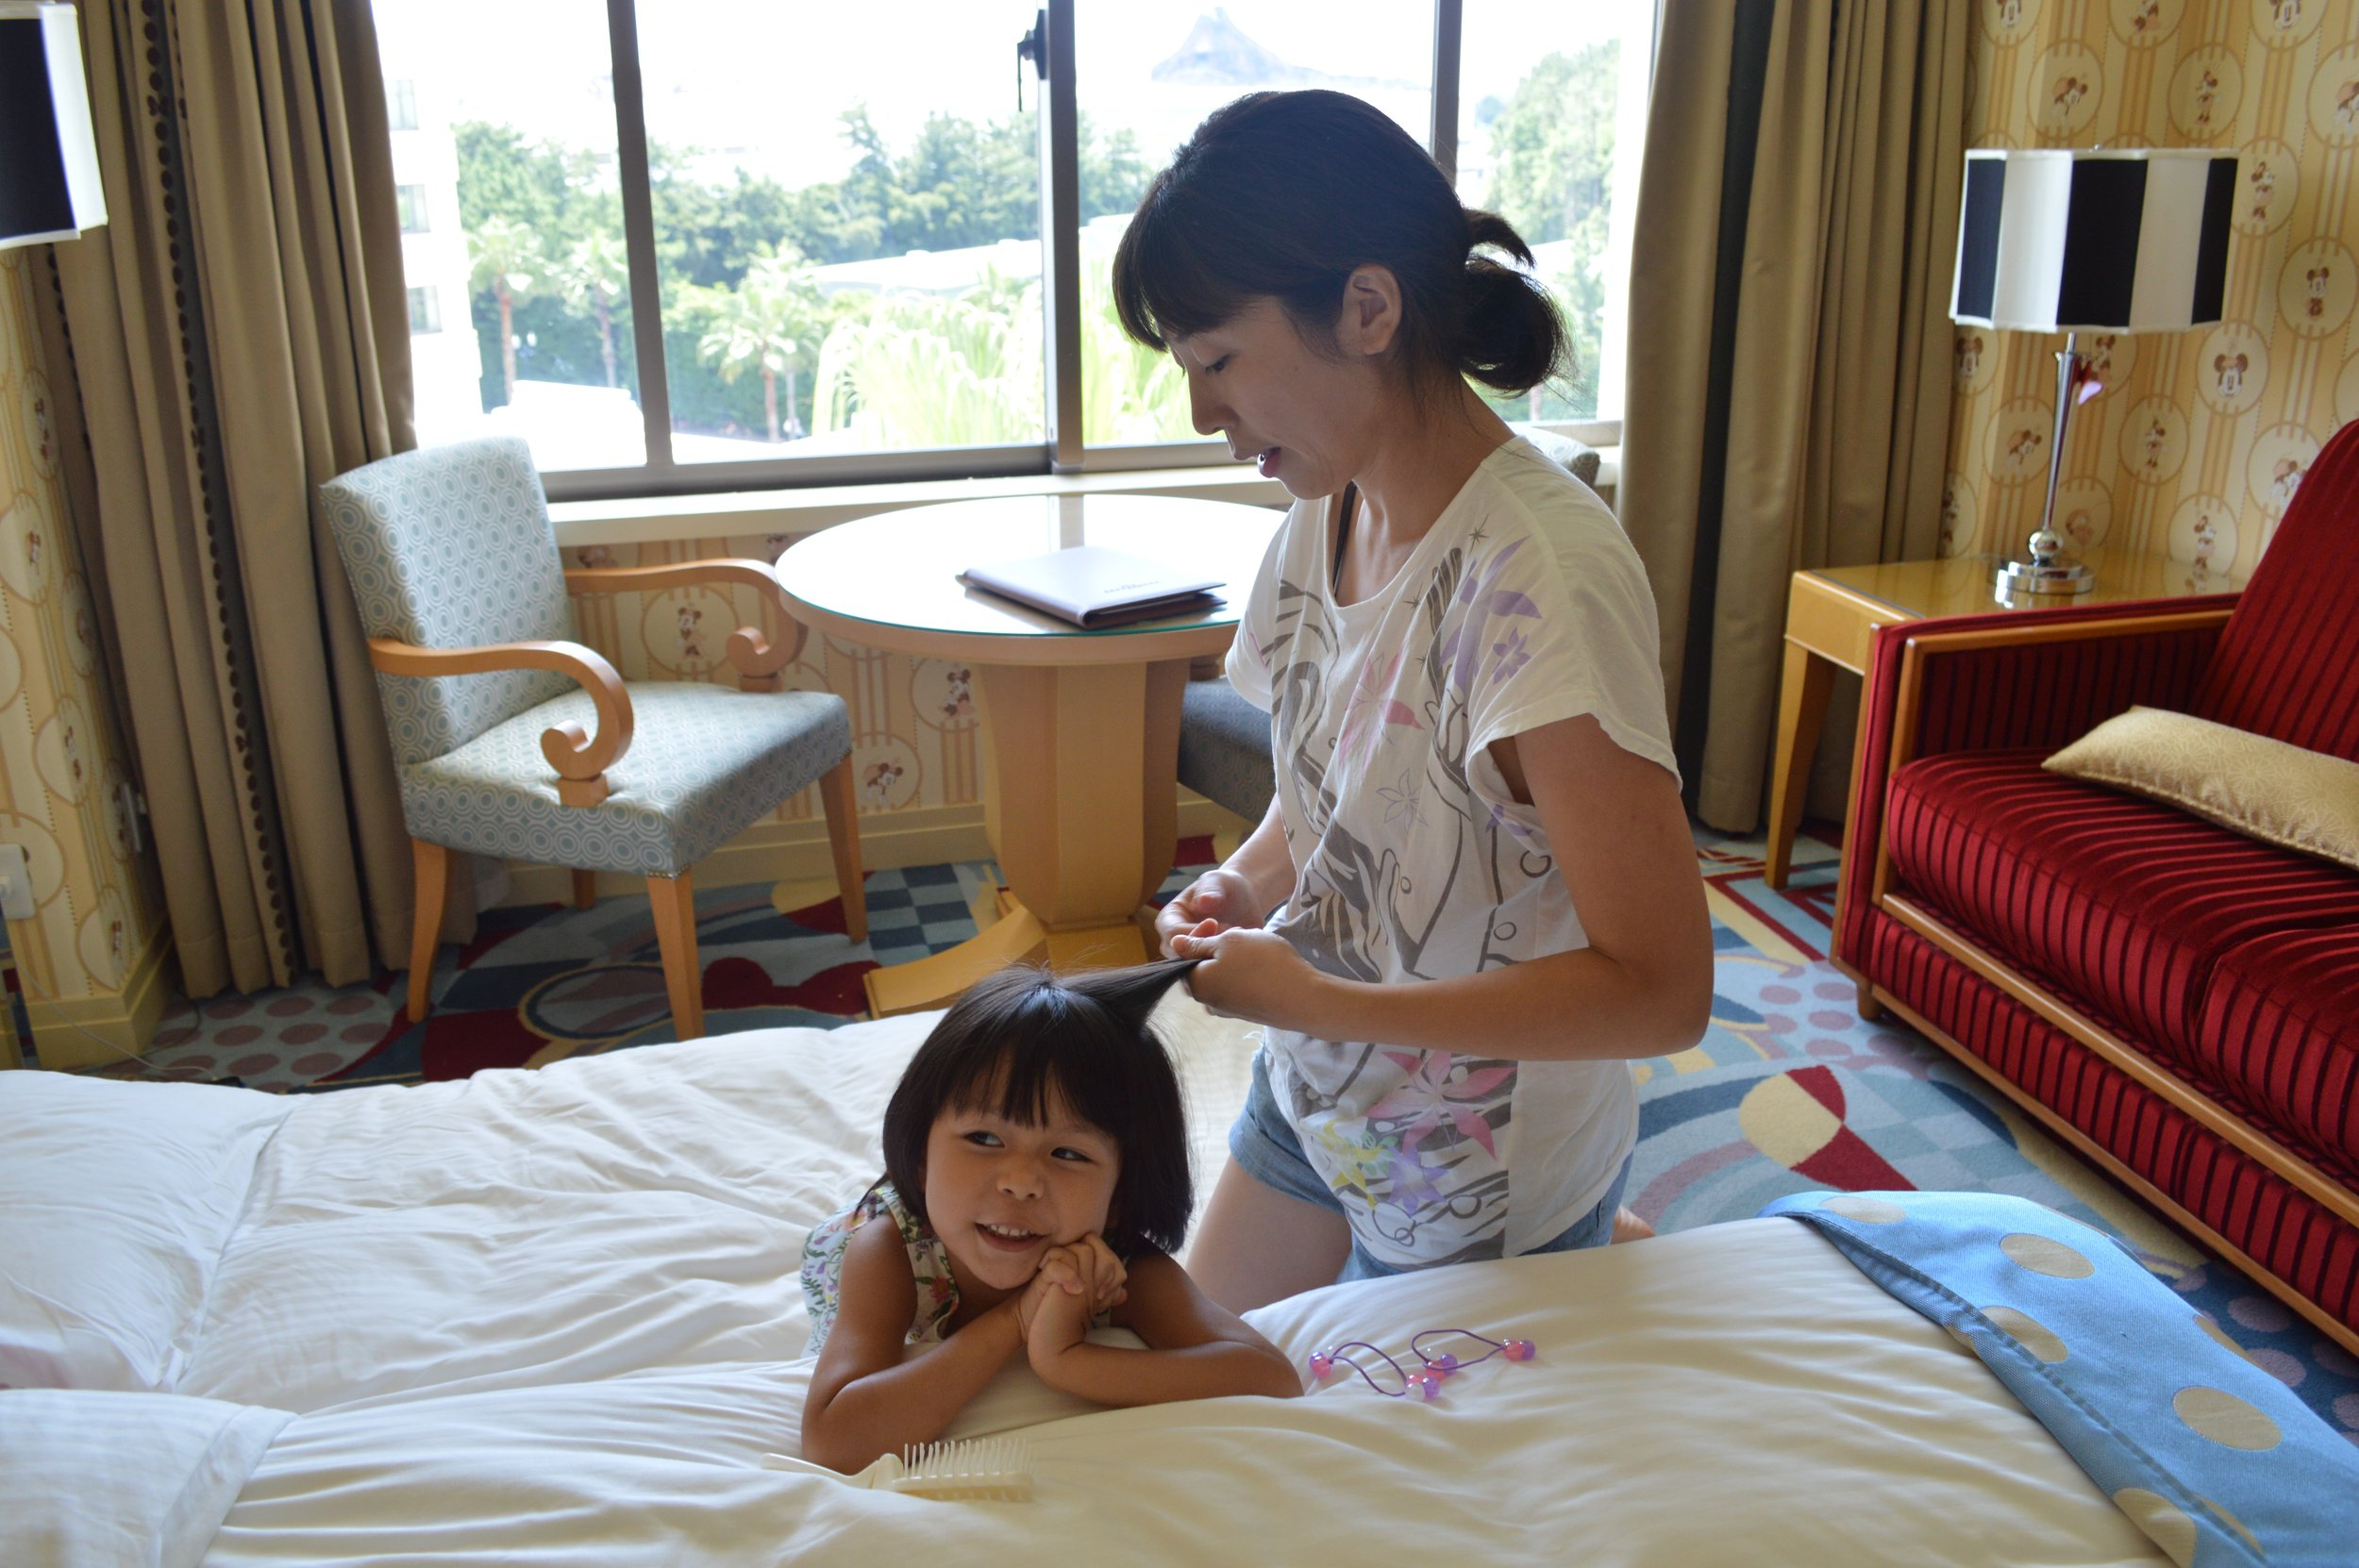 Mummy getting Little Mahina ready for a day in DisneySea